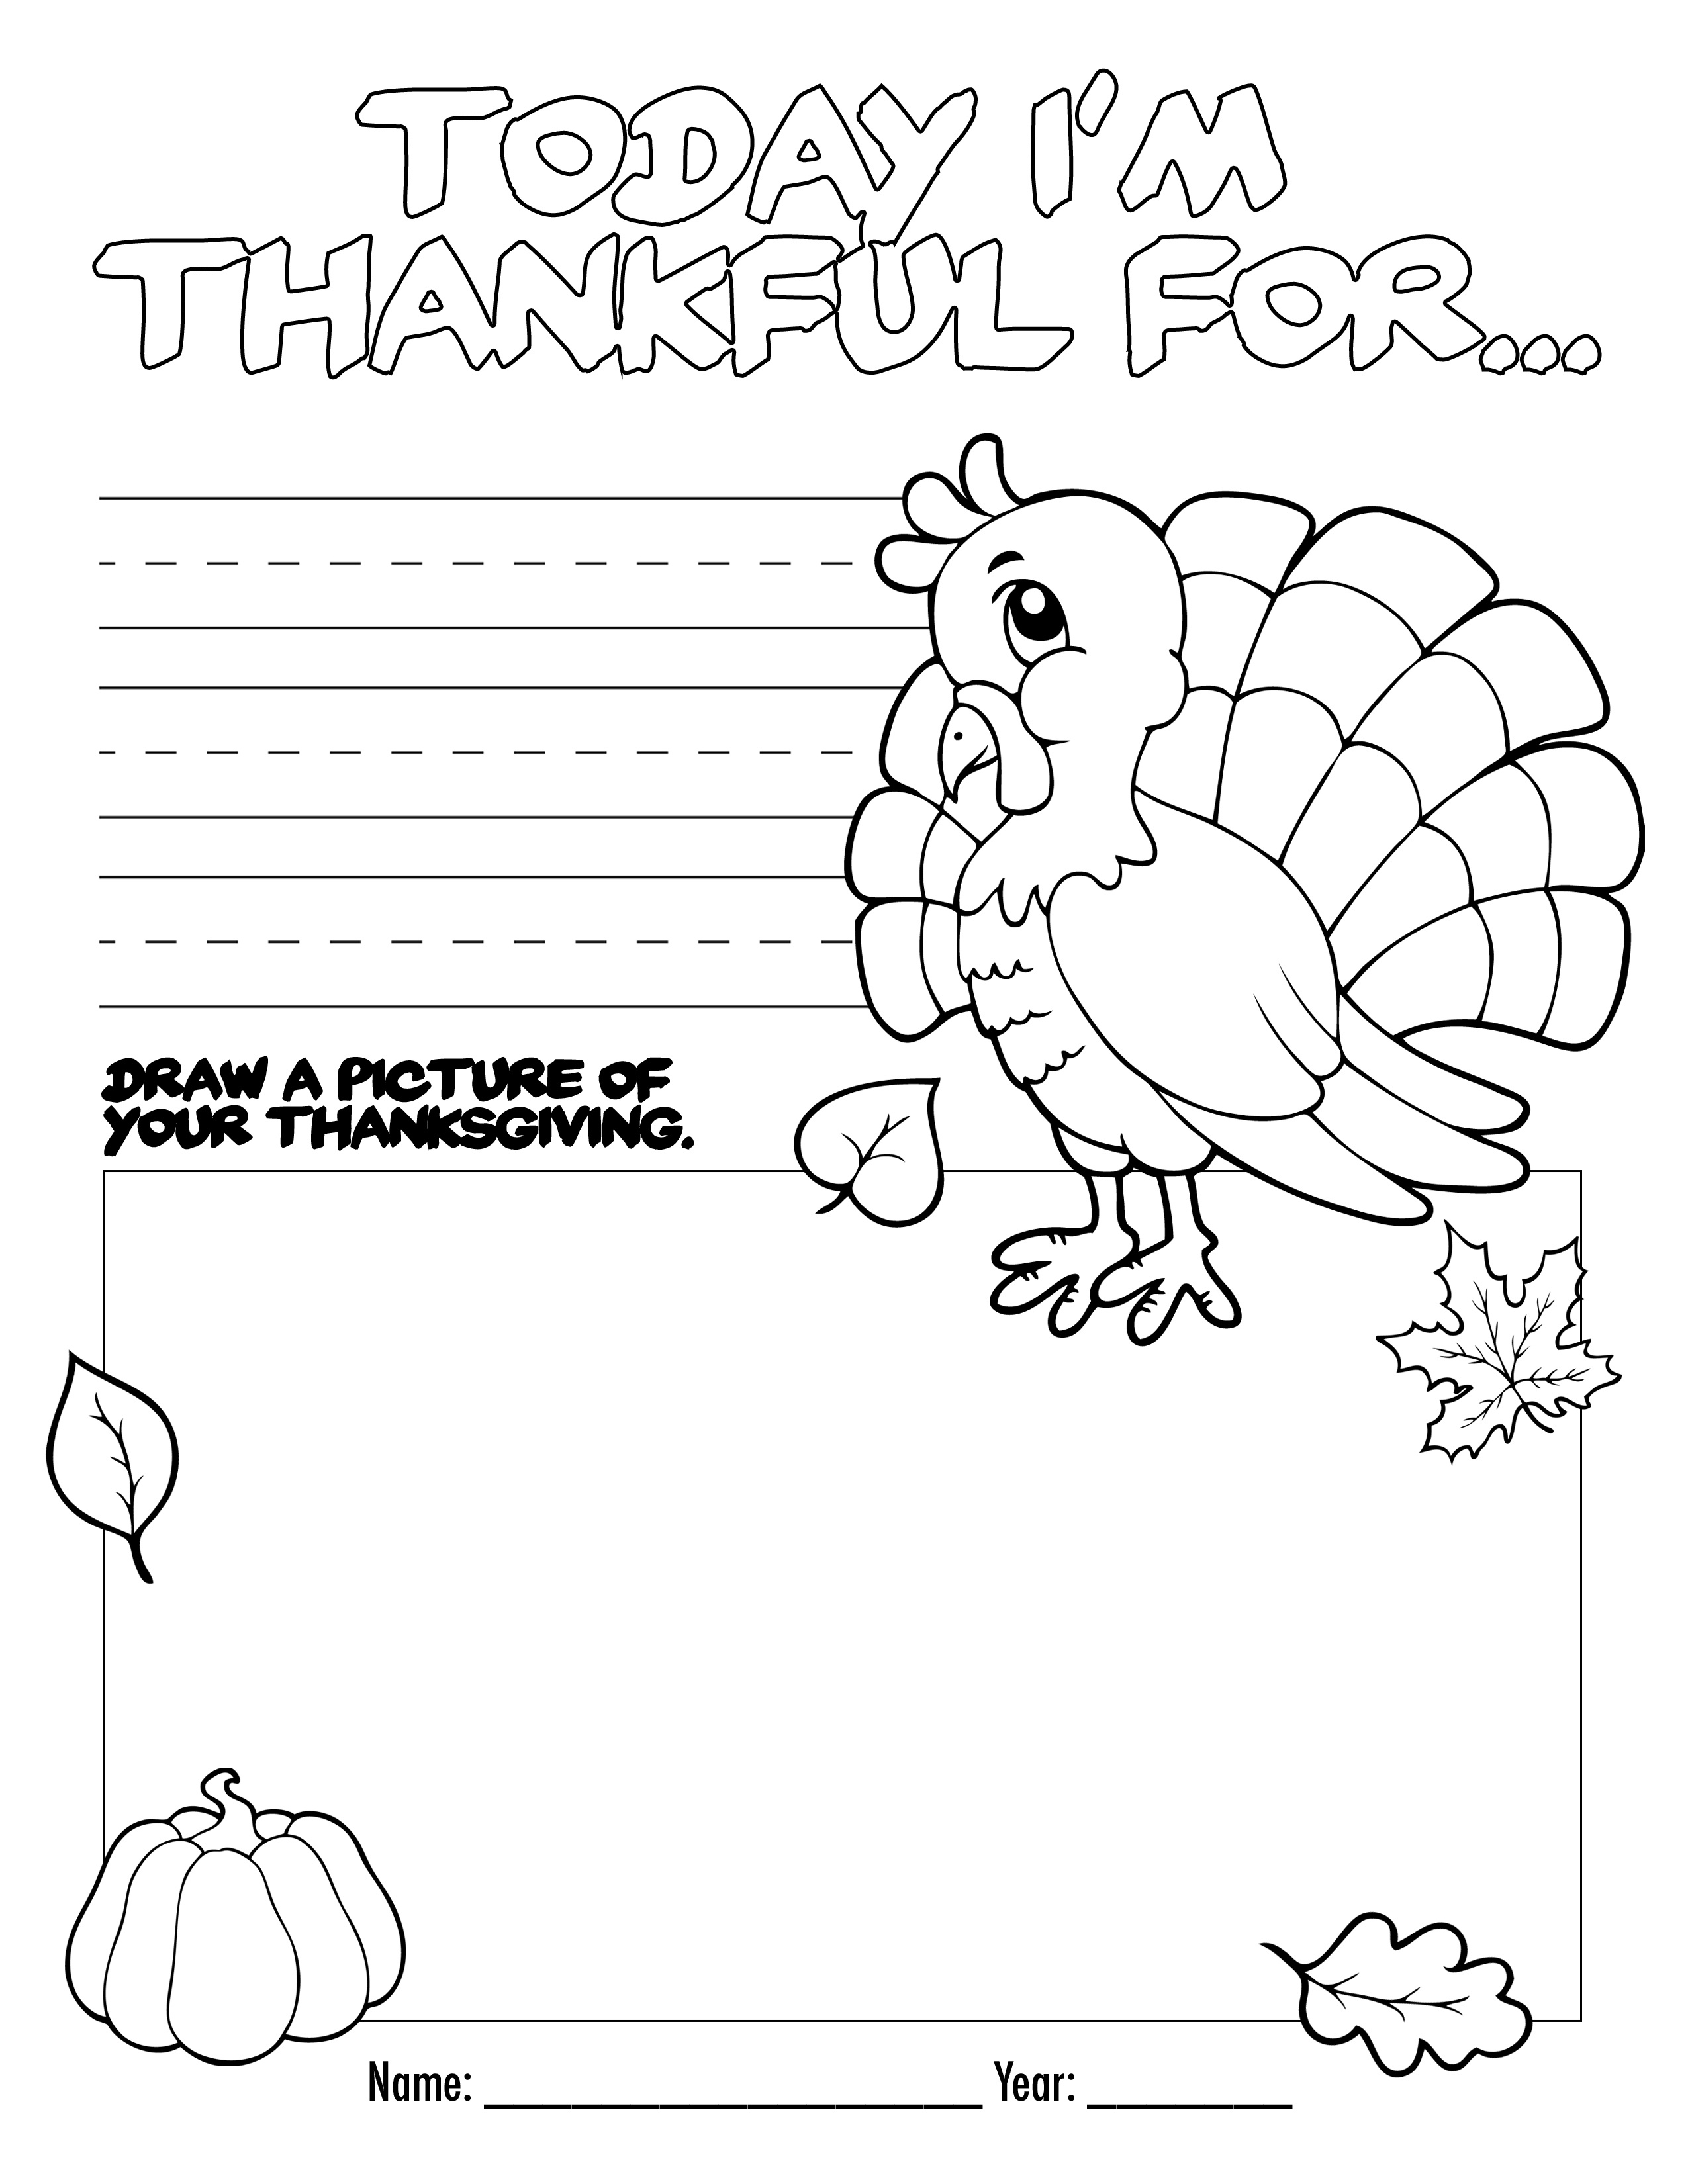 Thanksgiving Coloring Book Free Printable For The Kids! - Free Thanksgiving Printables